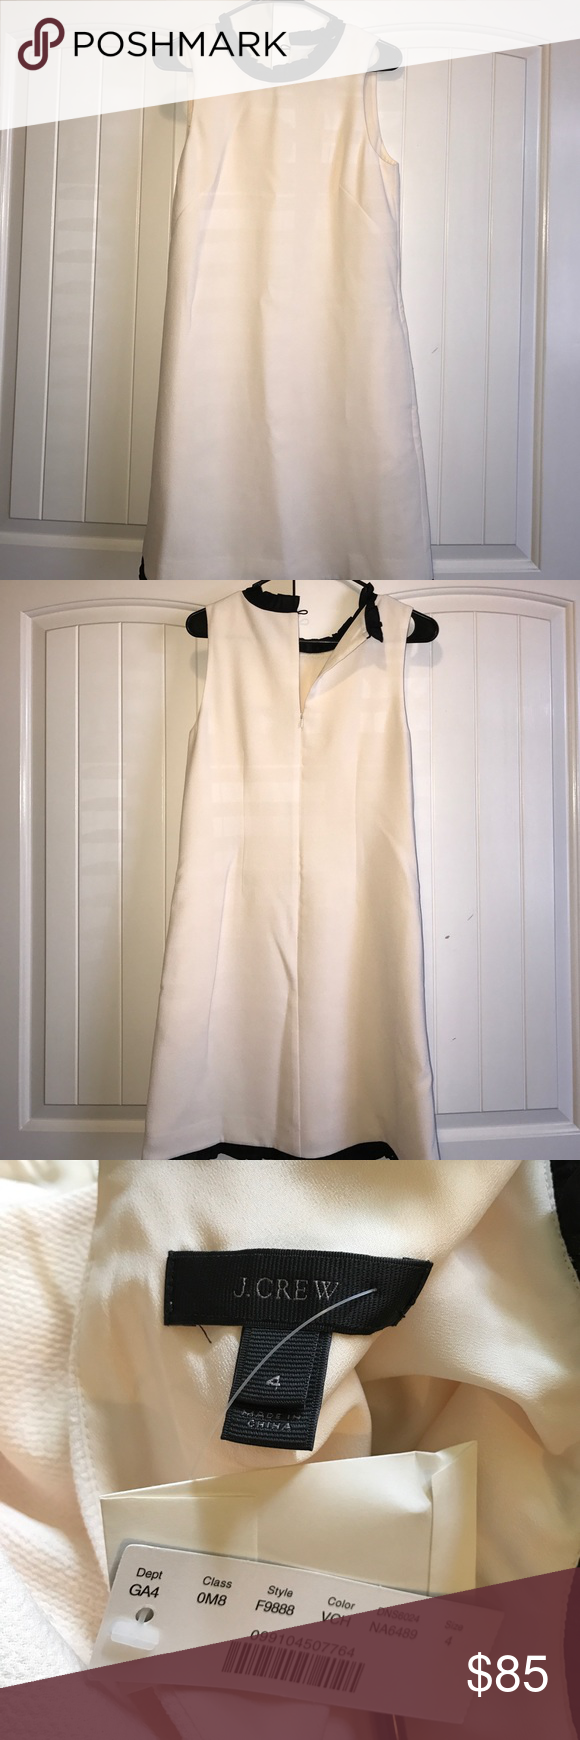 "J Crew Ruffle Dress Size 4 Brand new with tags. From the fall/winter 2016 collection. Comes with original buttons and tags. The dress is a solid cream; the ""pattern"" comes from the sun shining through my blinds! J. Crew Dresses"